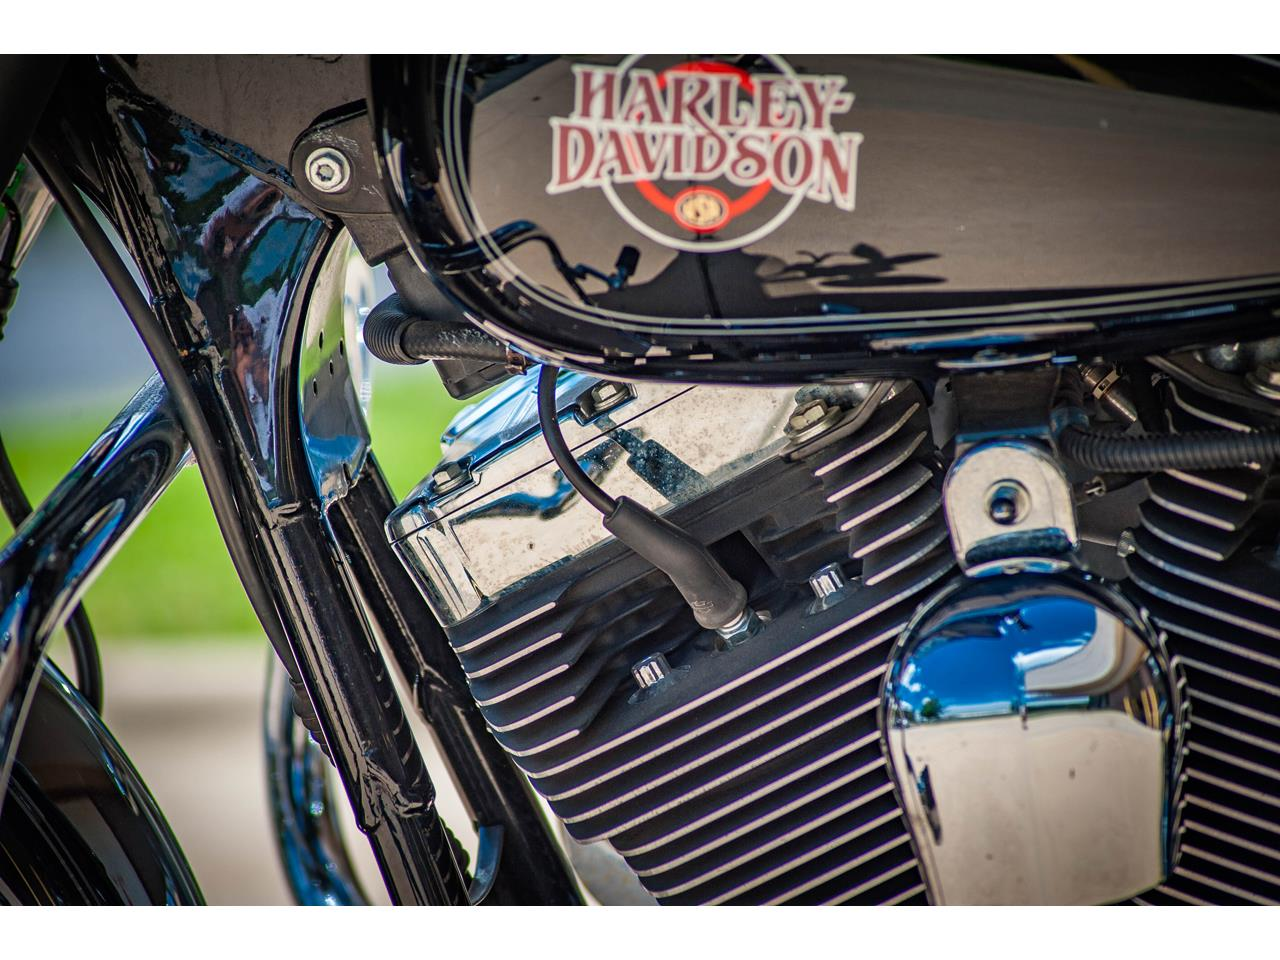 2004 Harley-Davidson Motorcycle for sale in O'Fallon, IL – photo 74